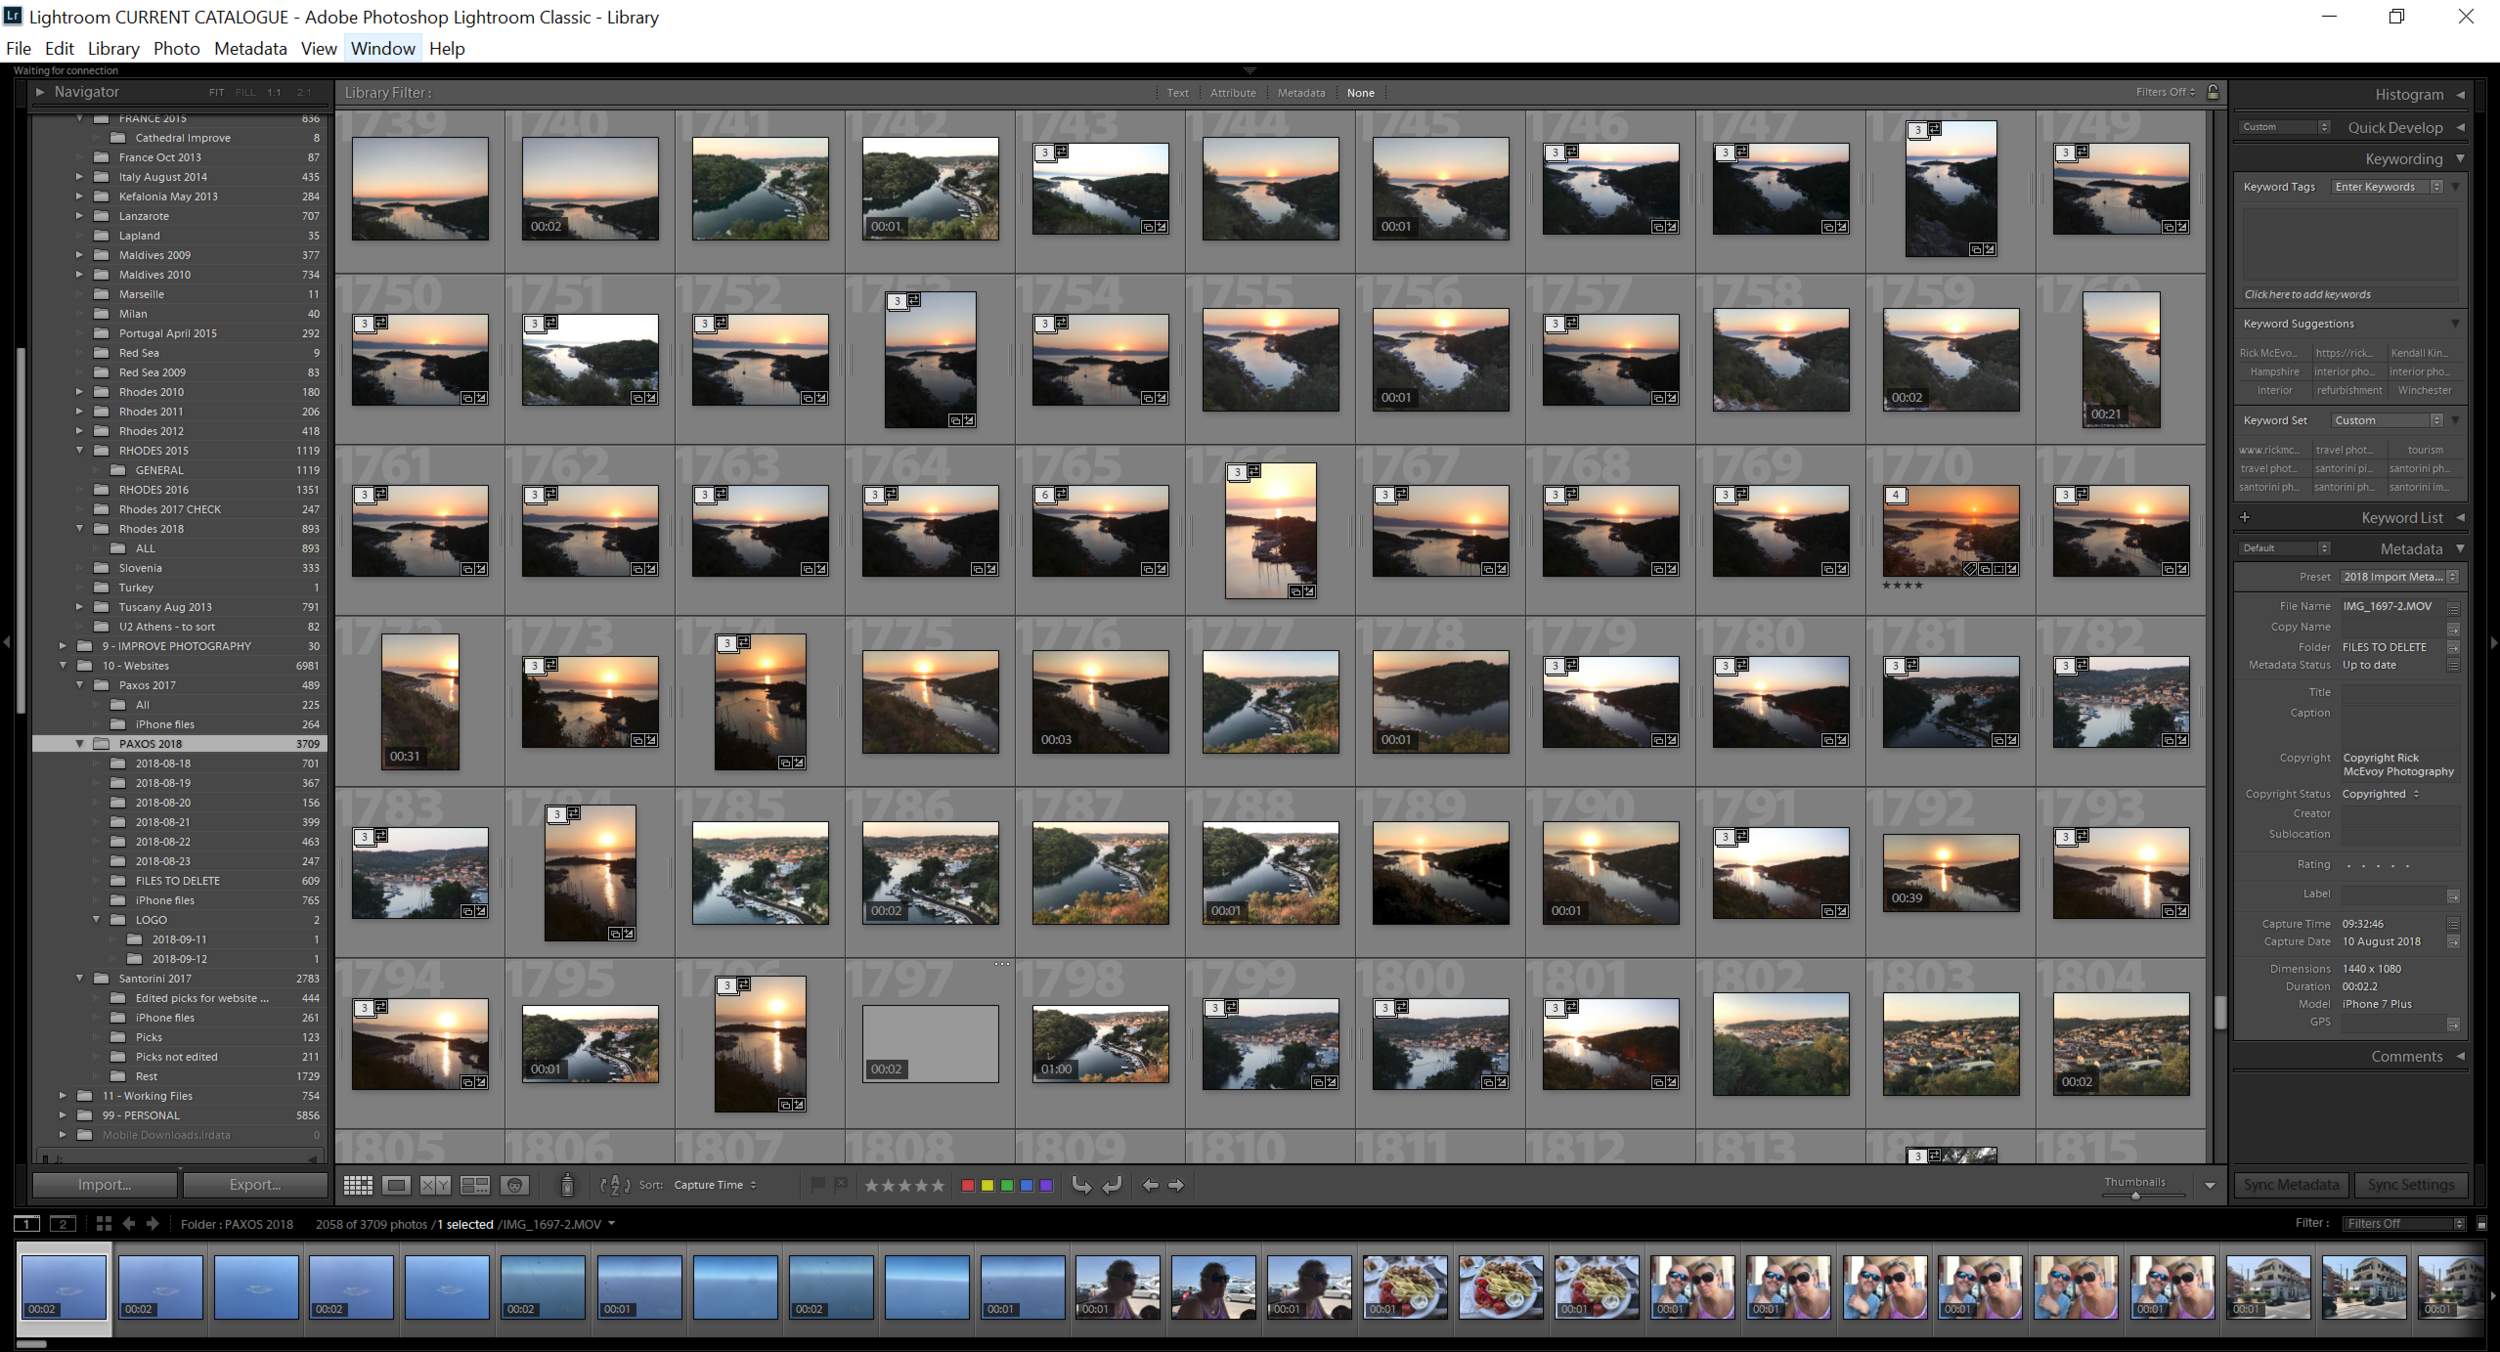 This is what Lightroom Classic looks like